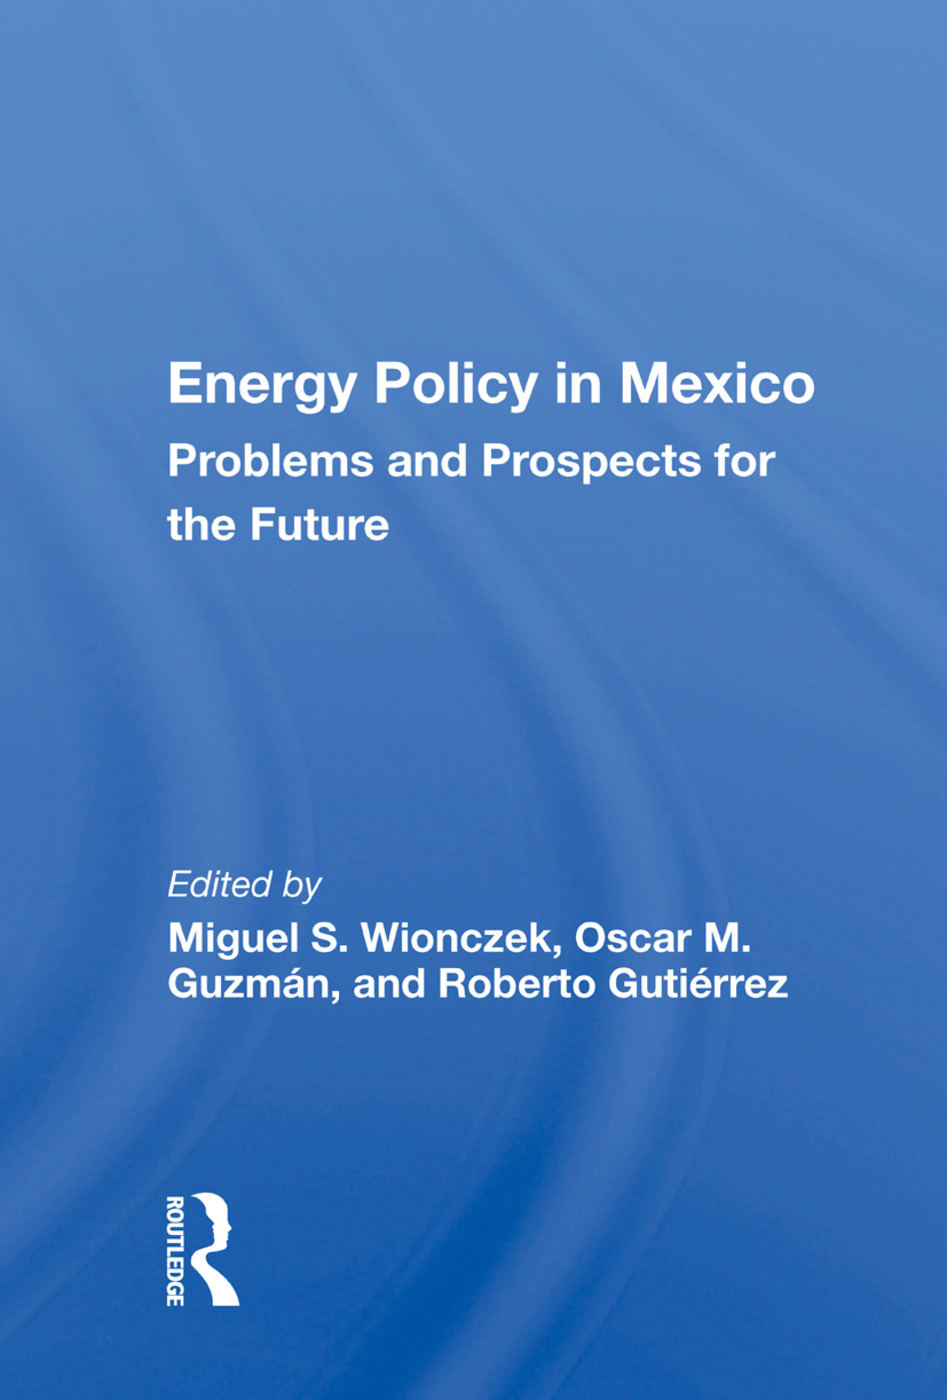 Energy Policy In Mexico: Prospects And Problems For The Future book cover